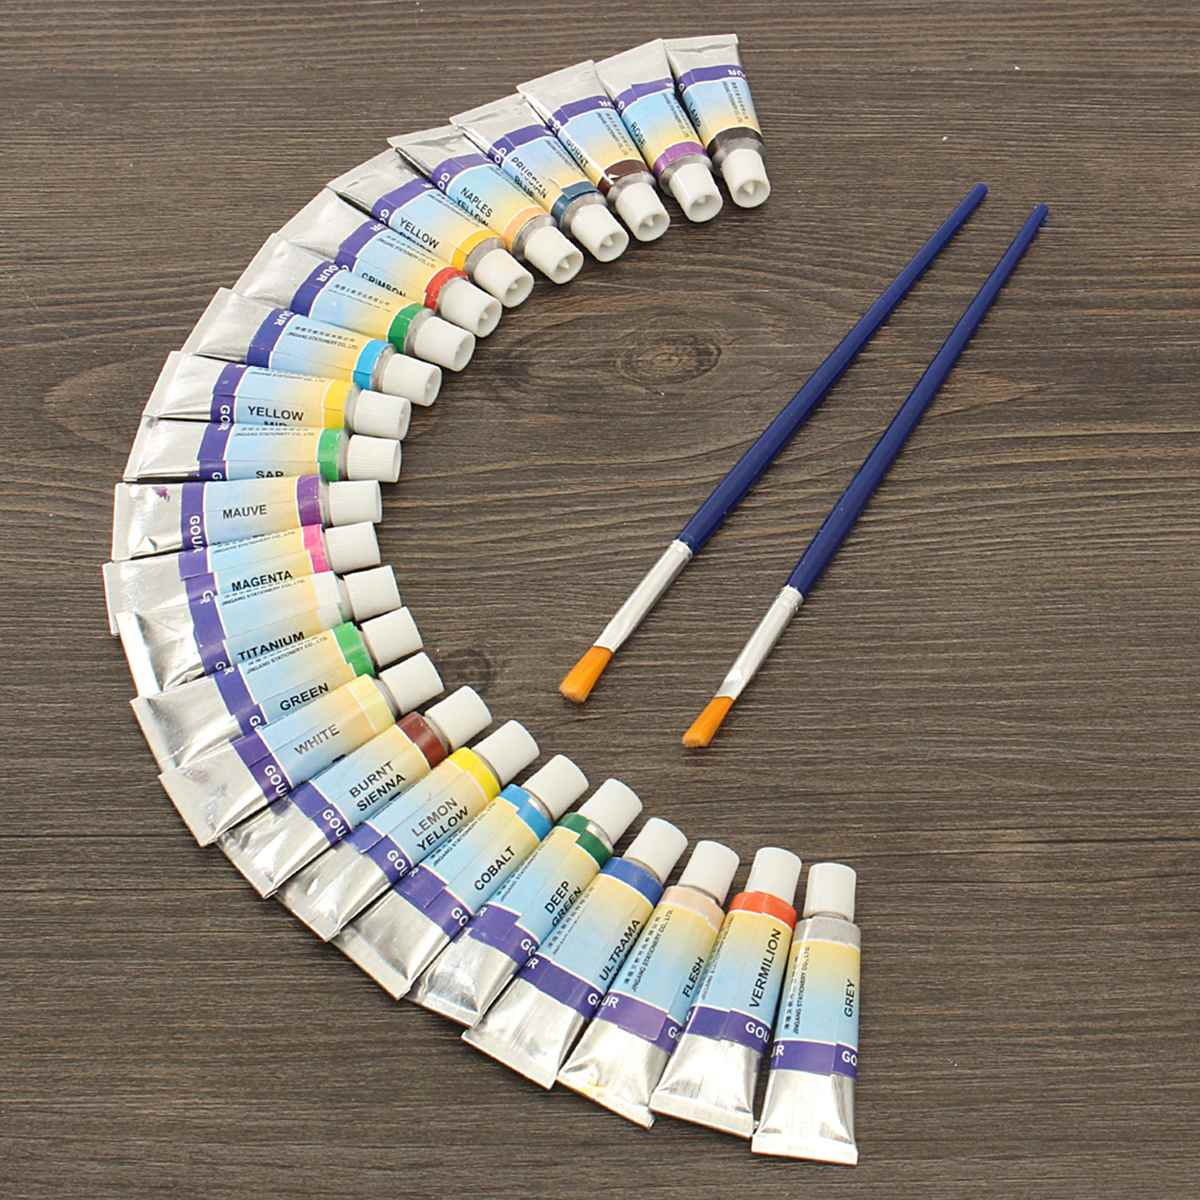 Professional 24 Colors 5ml Paint Tube Gouache Drawing Watercolor + 2 Brushes for Artist School Student Water Paint Hand PaintedProfessional 24 Colors 5ml Paint Tube Gouache Drawing Watercolor + 2 Brushes for Artist School Student Water Paint Hand Painted